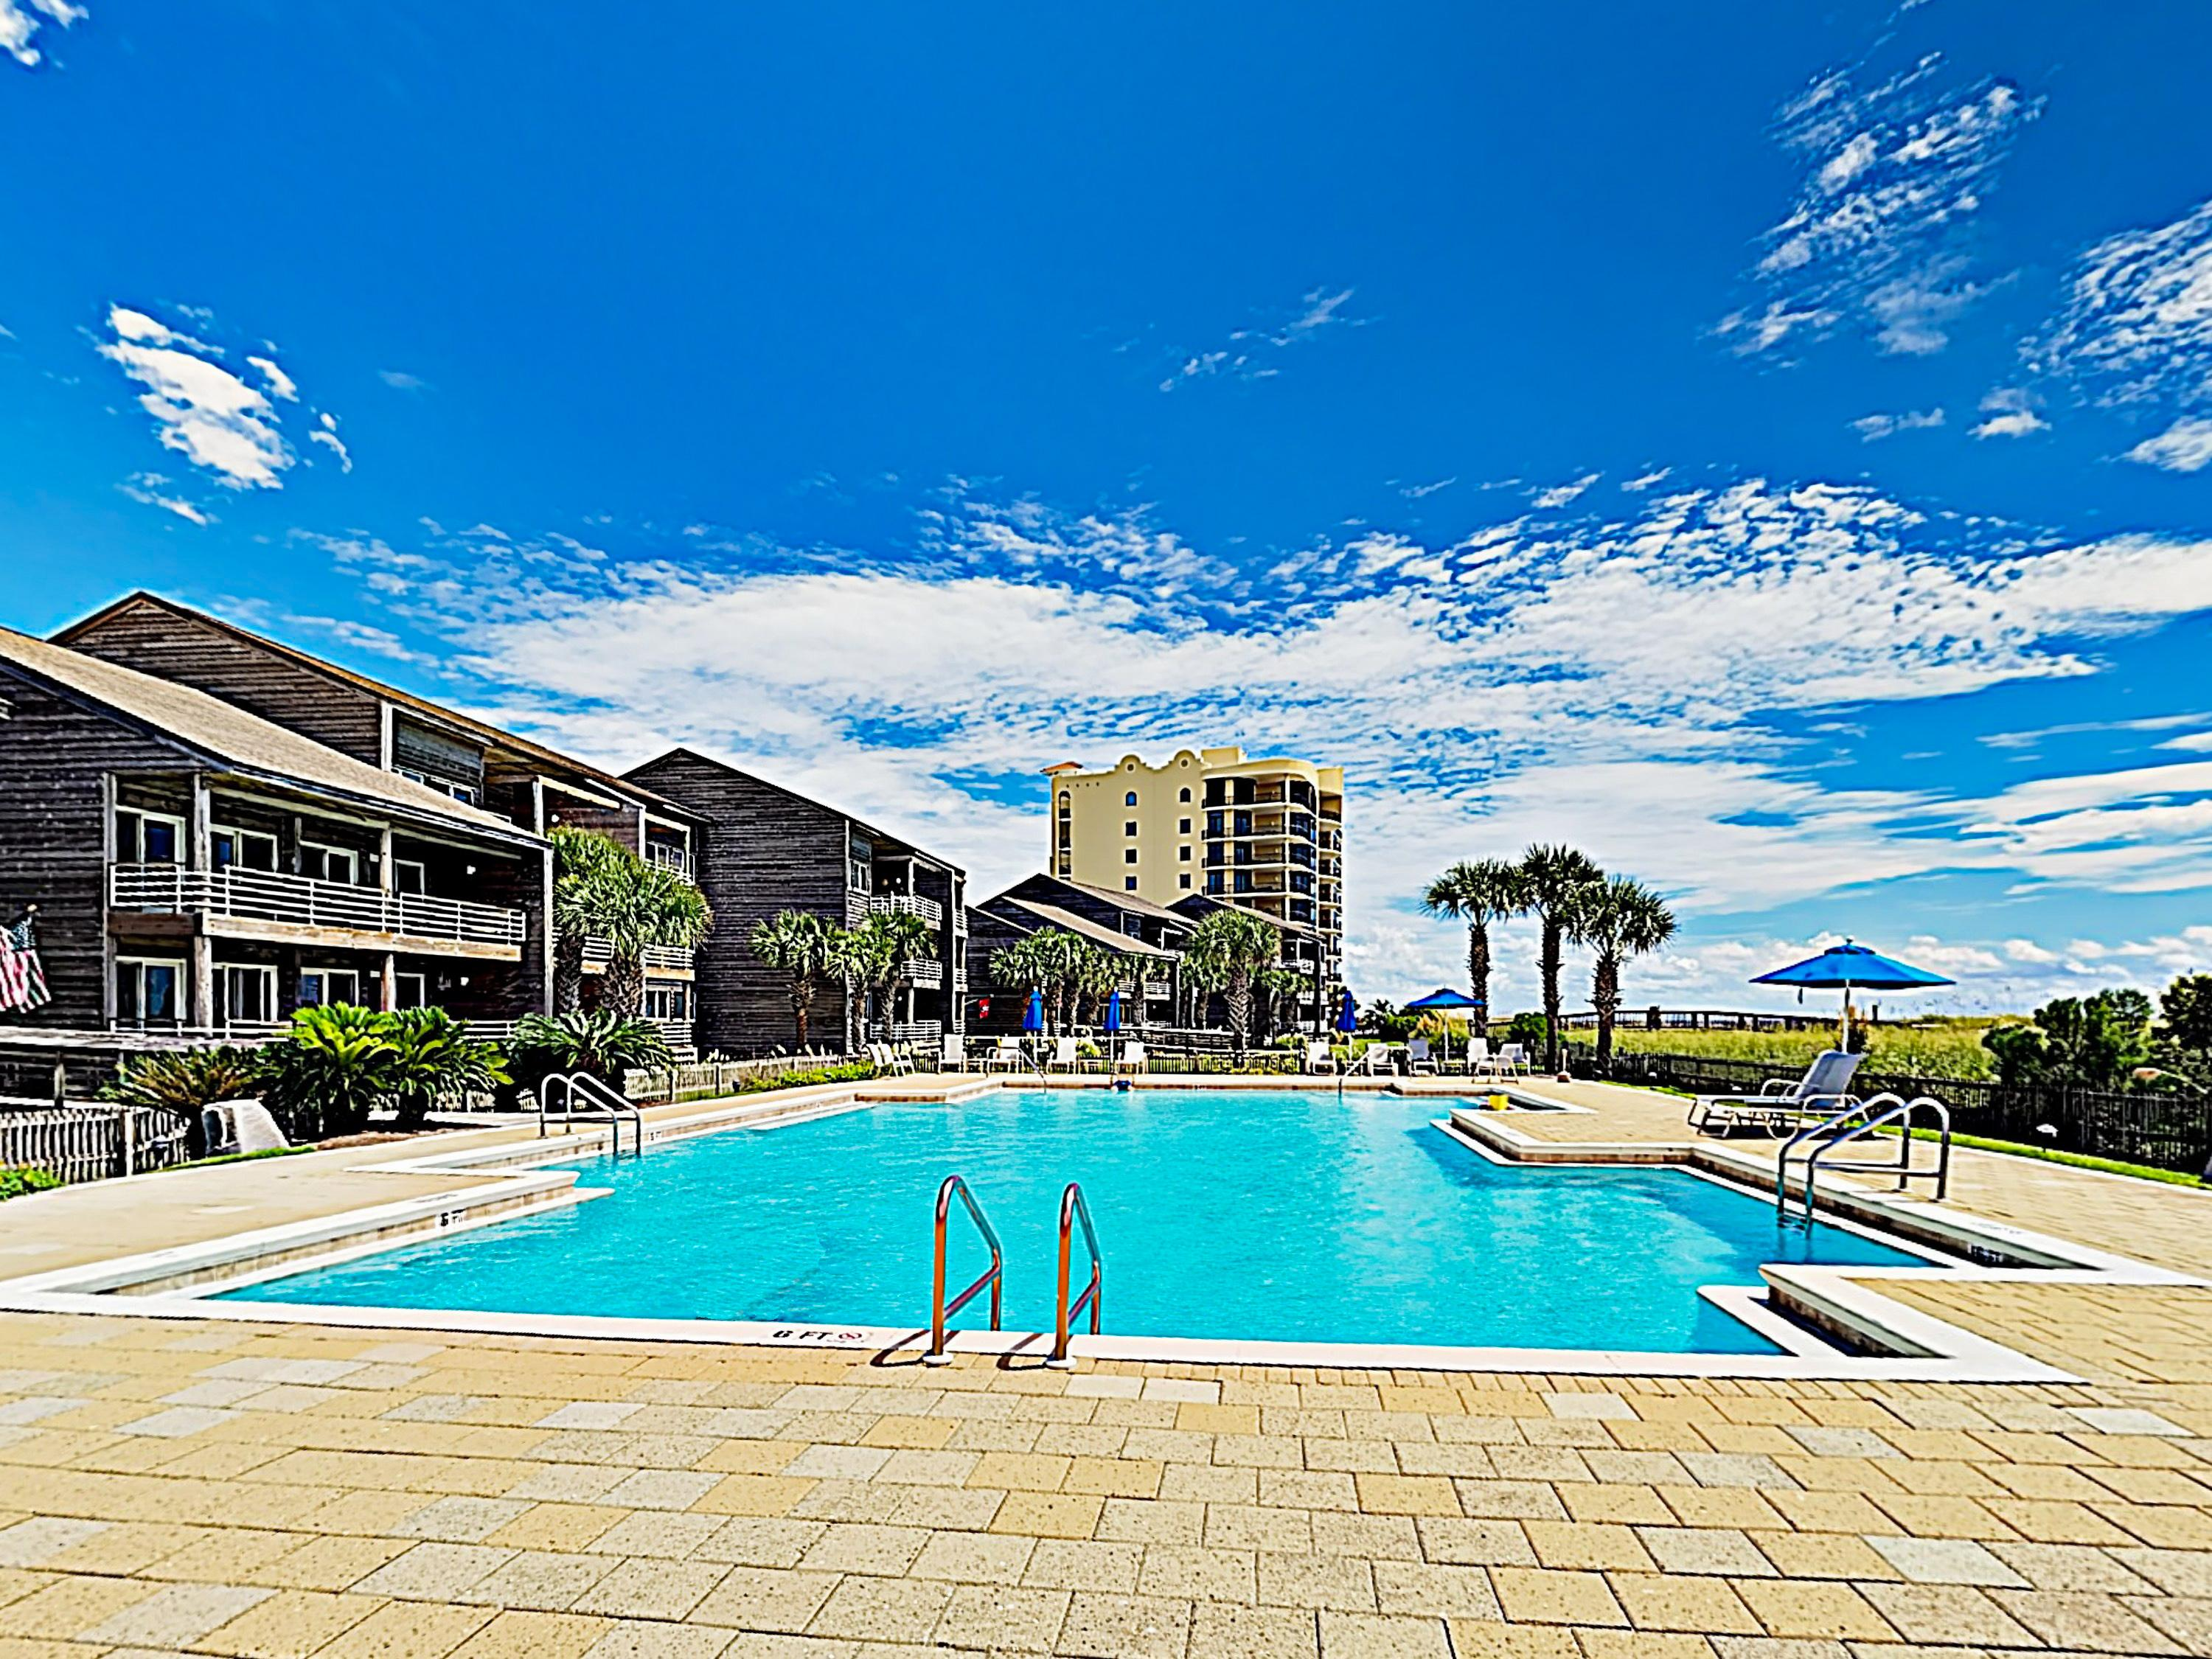 2 sparkling pools invite you to swim alongside Gulf and Old River views.